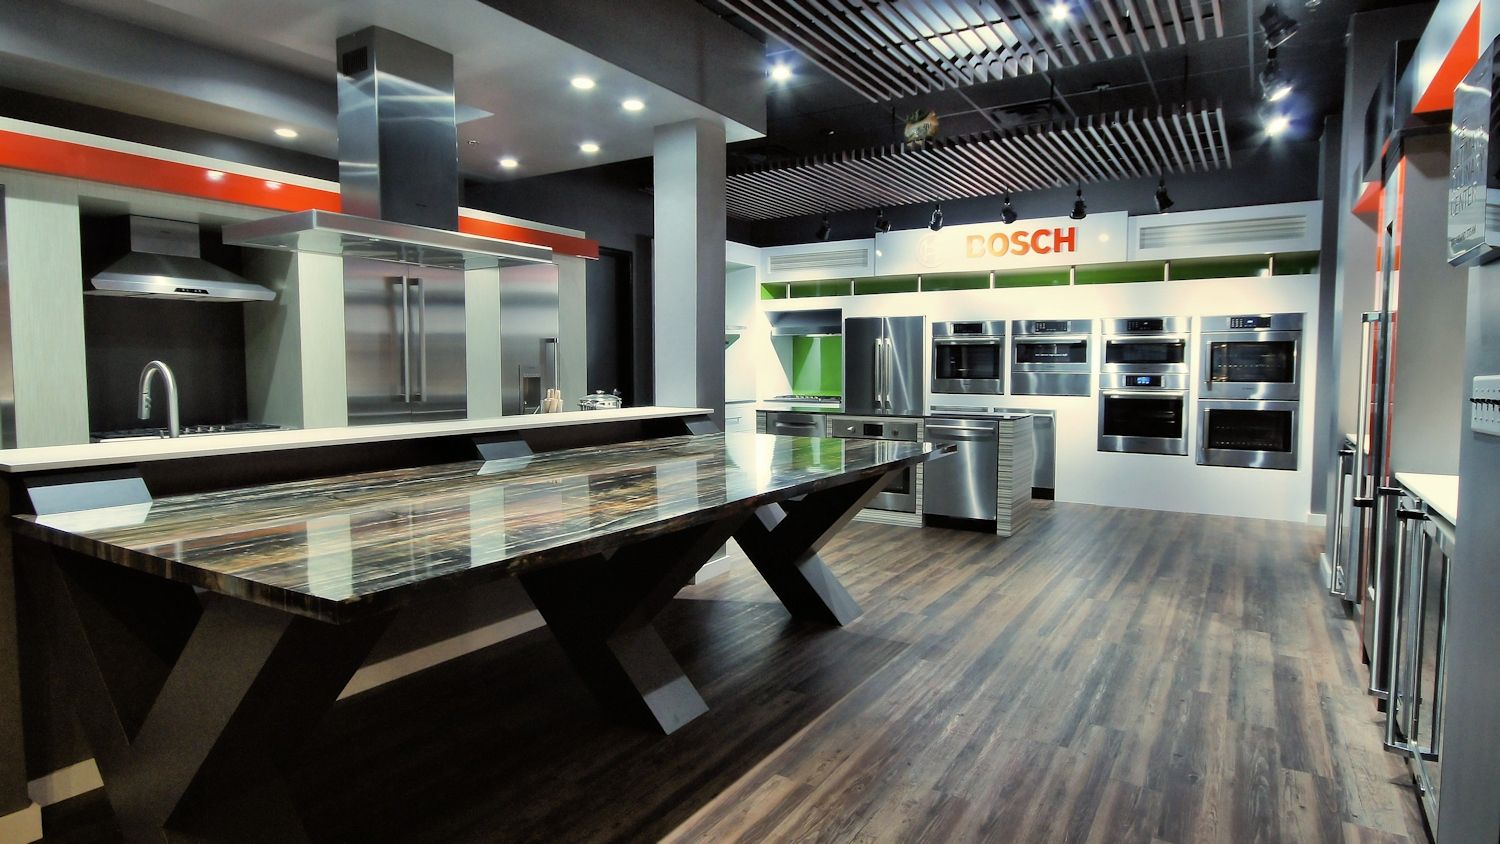 Thermador appliance showroom google search kitchen for Kitchen showrooms